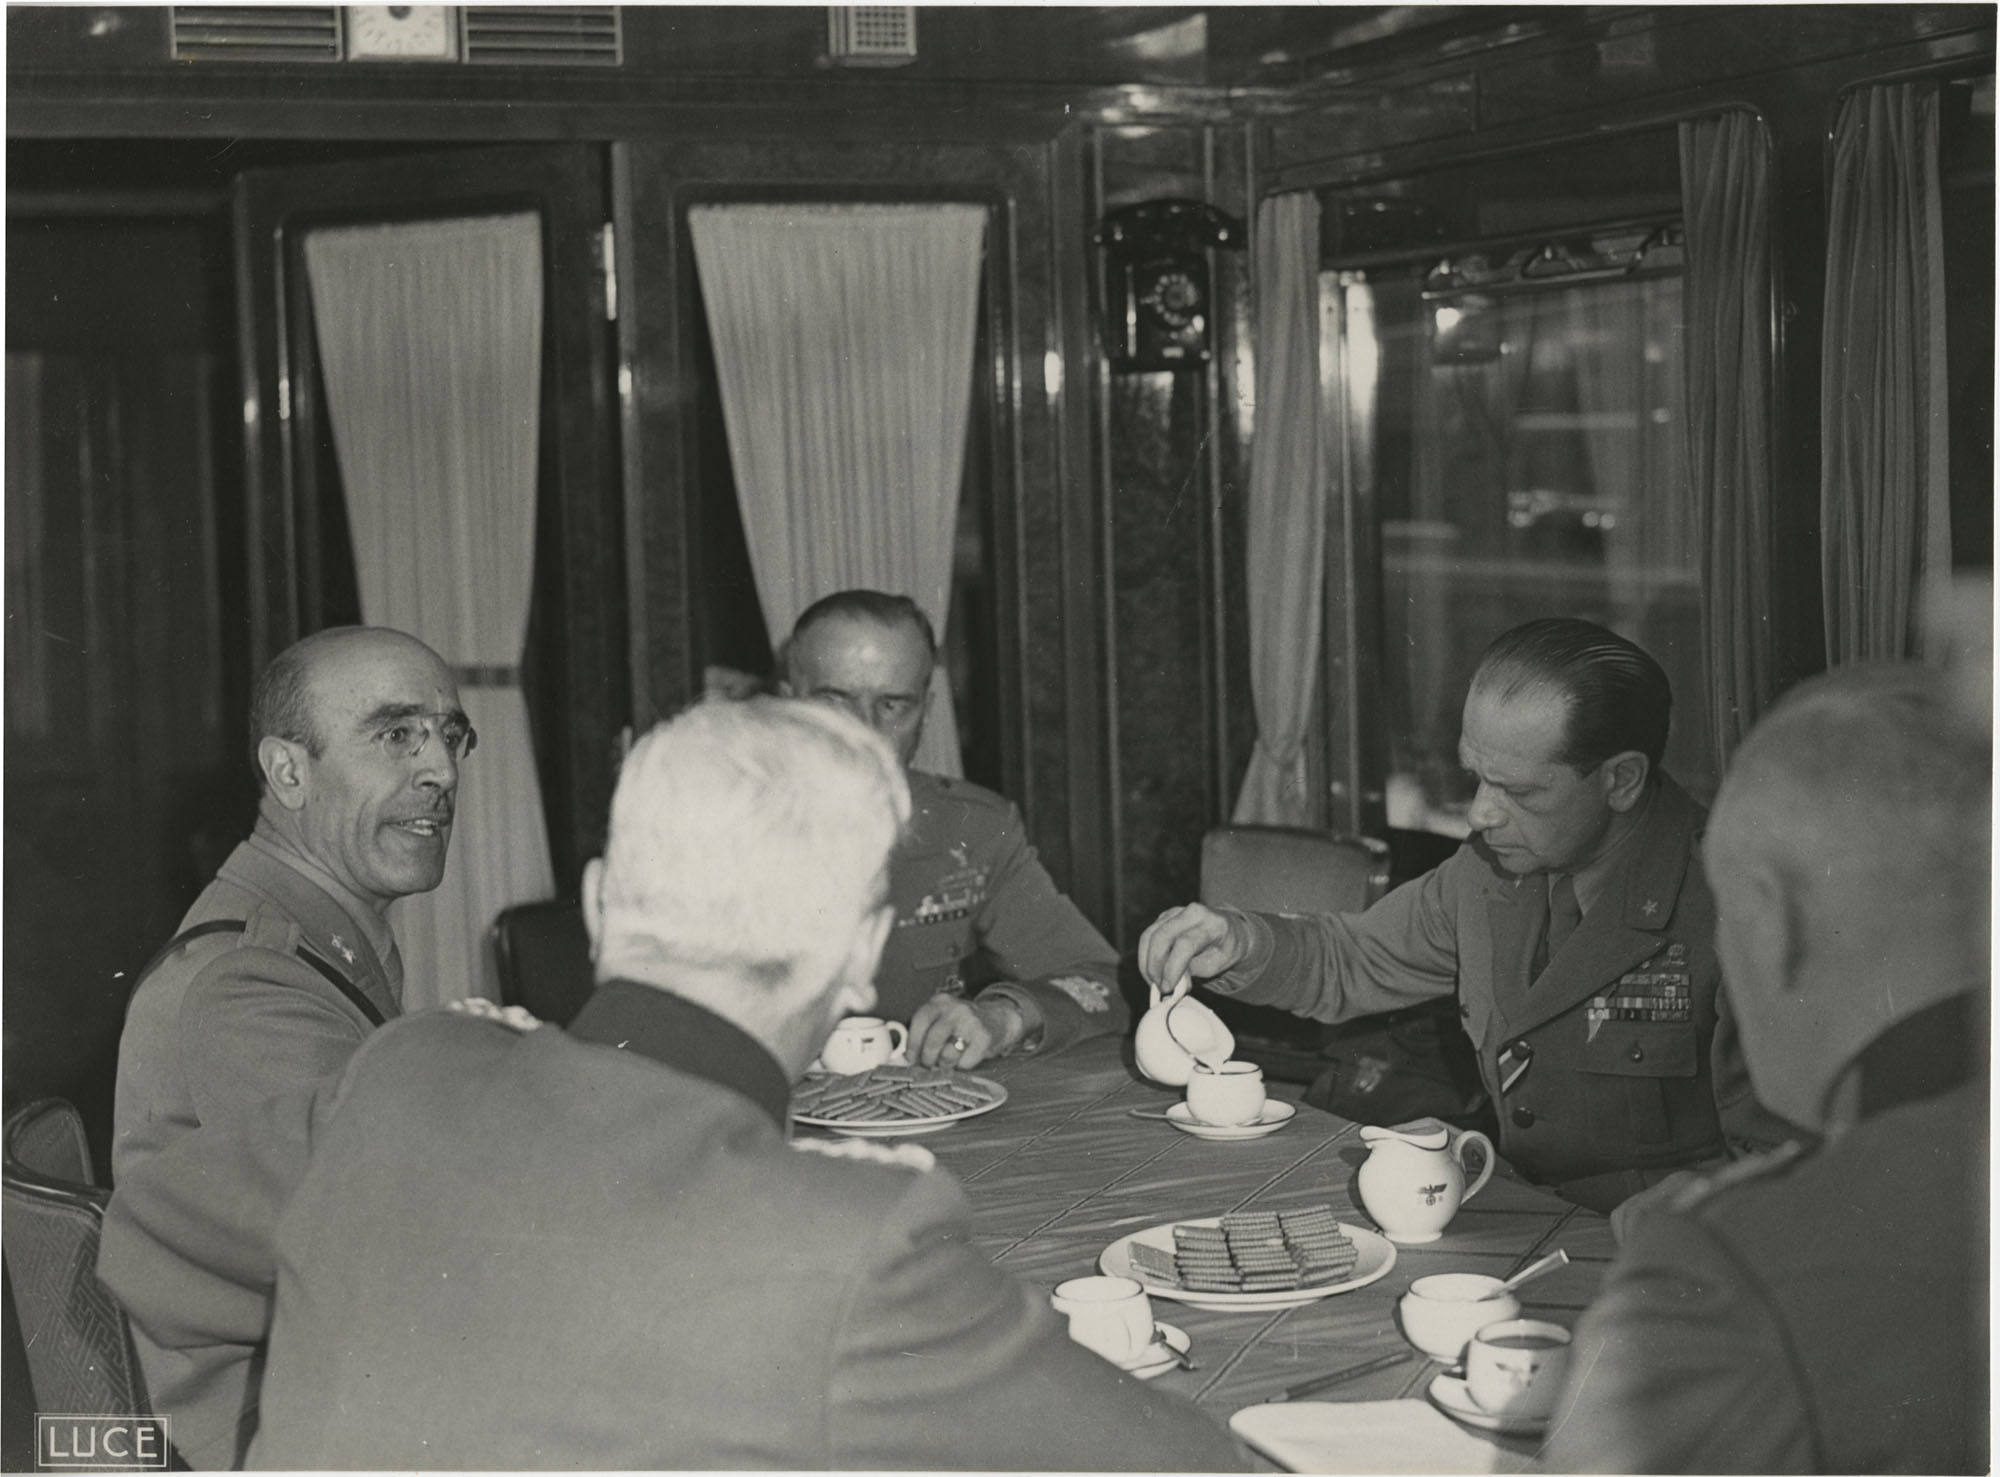 Military officials at a train station, Photograph 6